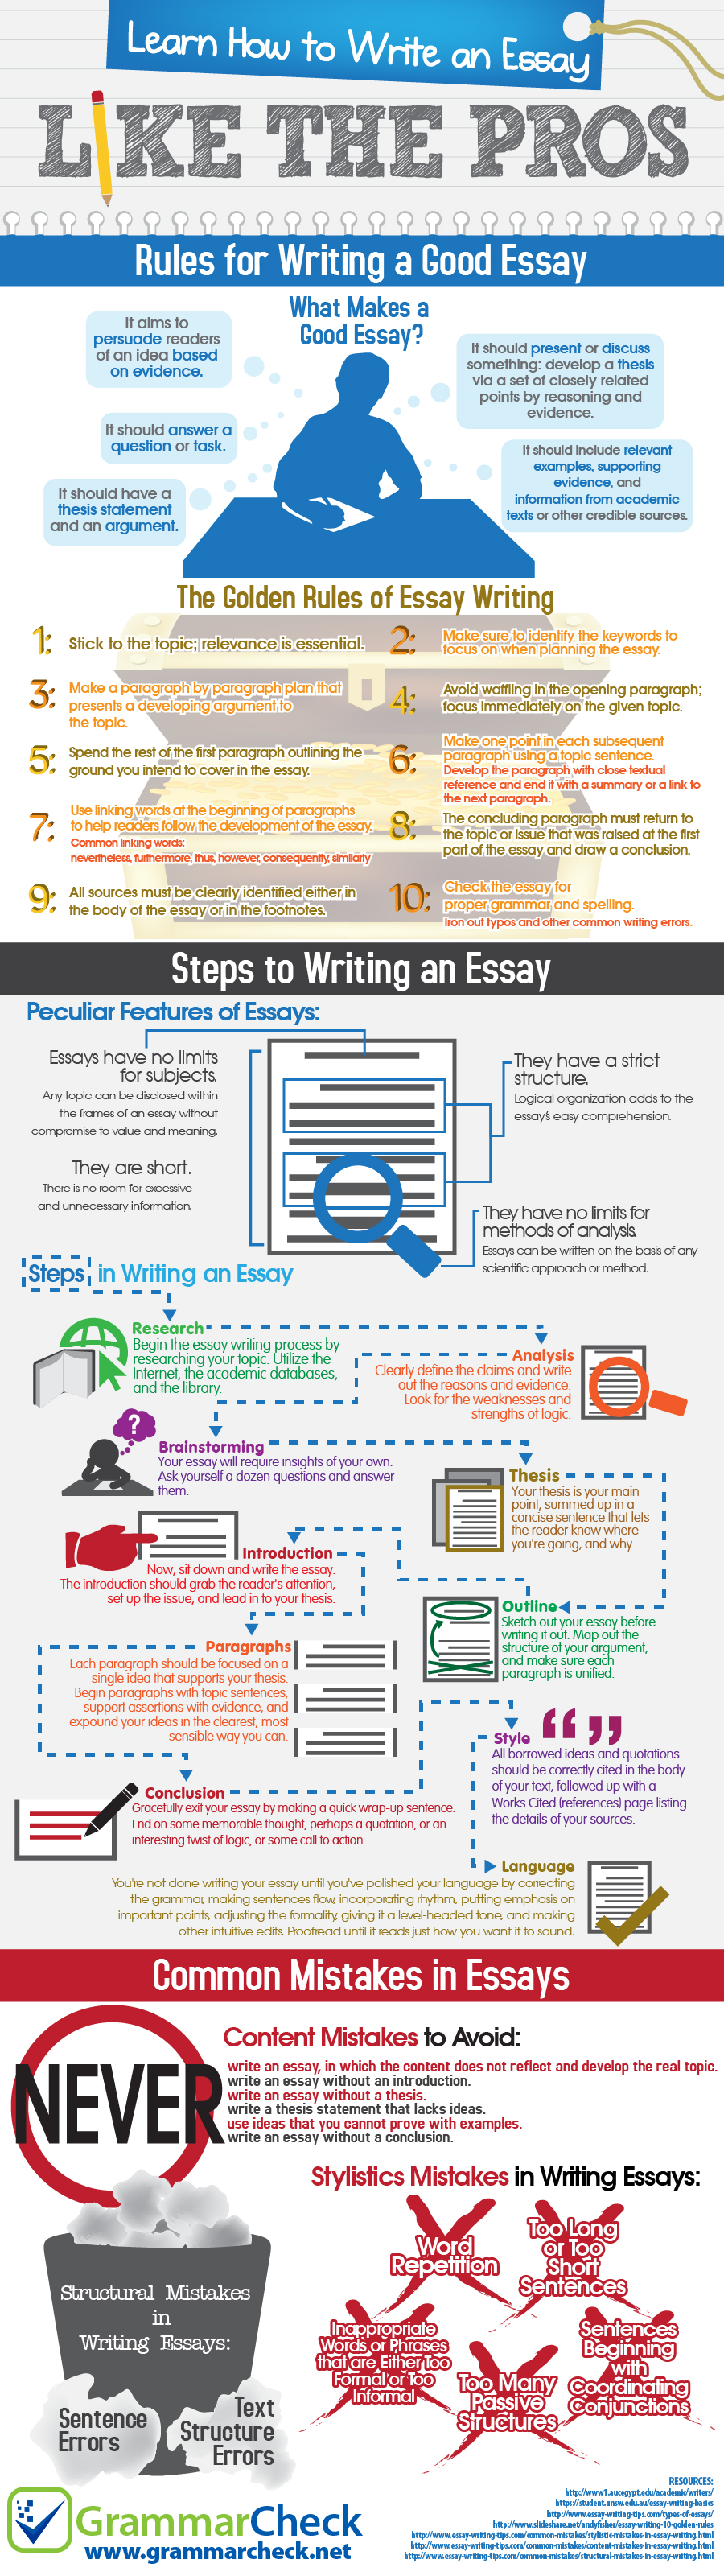 How To Write An Abstract For An Essay To Write An Essay Like The Pros Infographic How To Write An Essay Like The  Pros Process Essay Thesis also Act Essay Samples Www Essay Writing Essay Writing Anu Essay Art College Essay Writing  Research Essay Samples